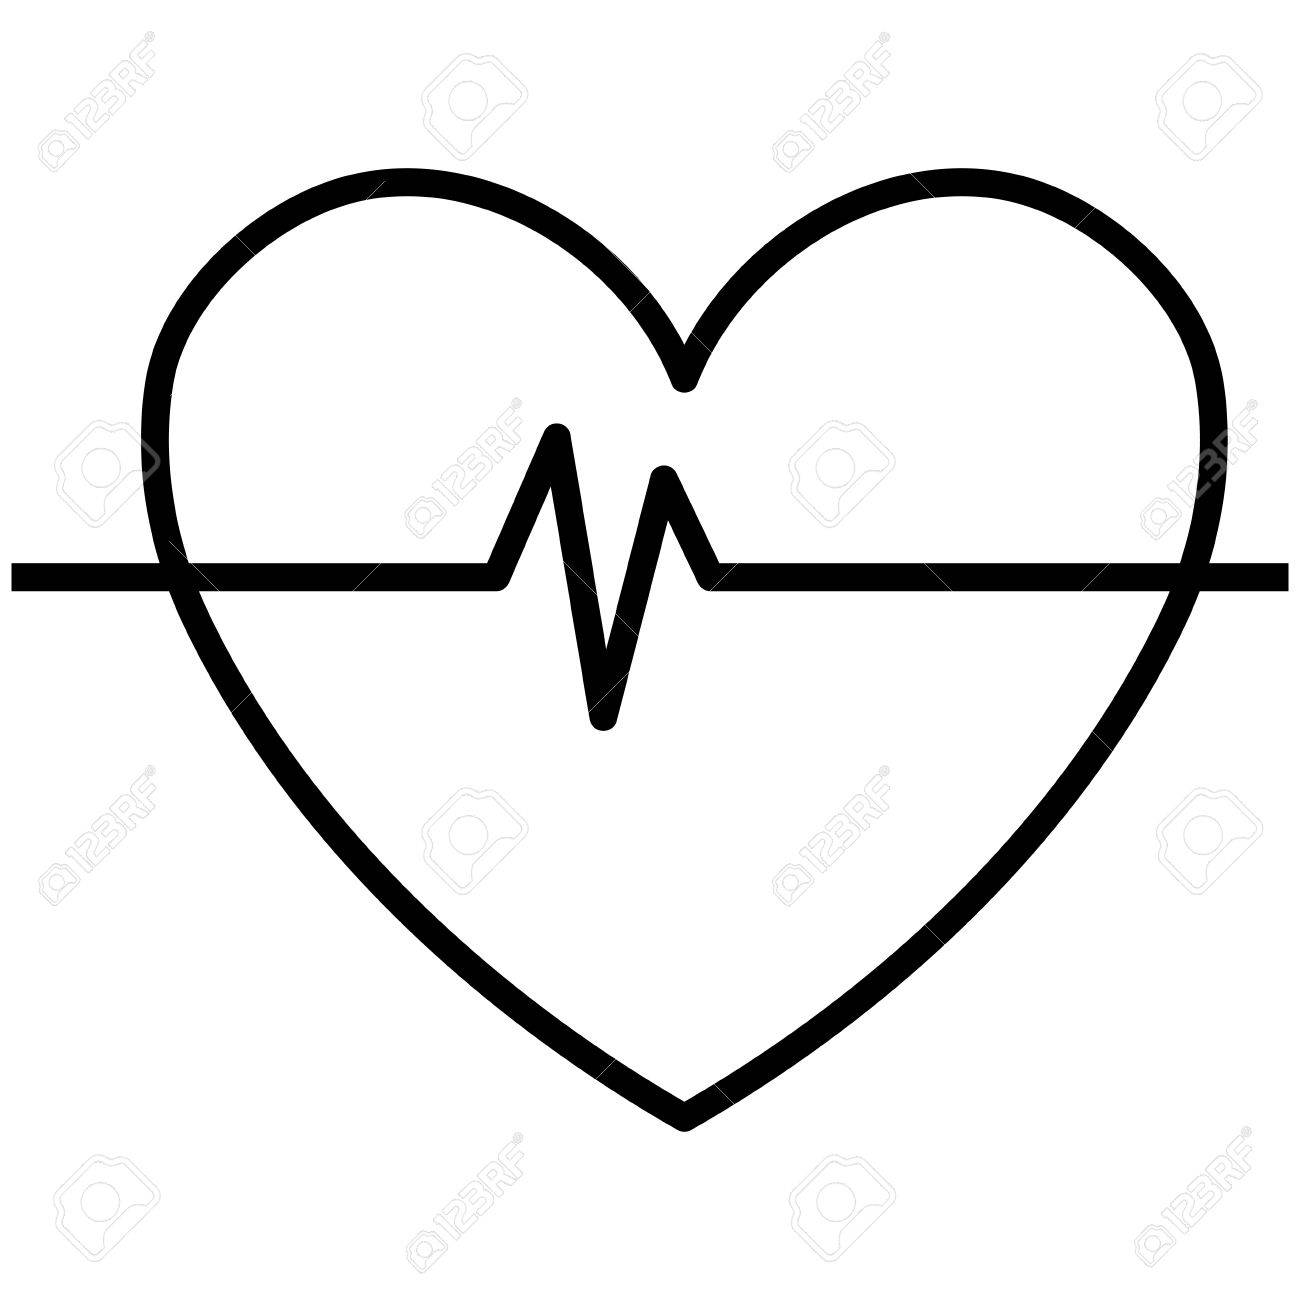 Black And White Heart Design With Heart Beats Icon Over Isolated